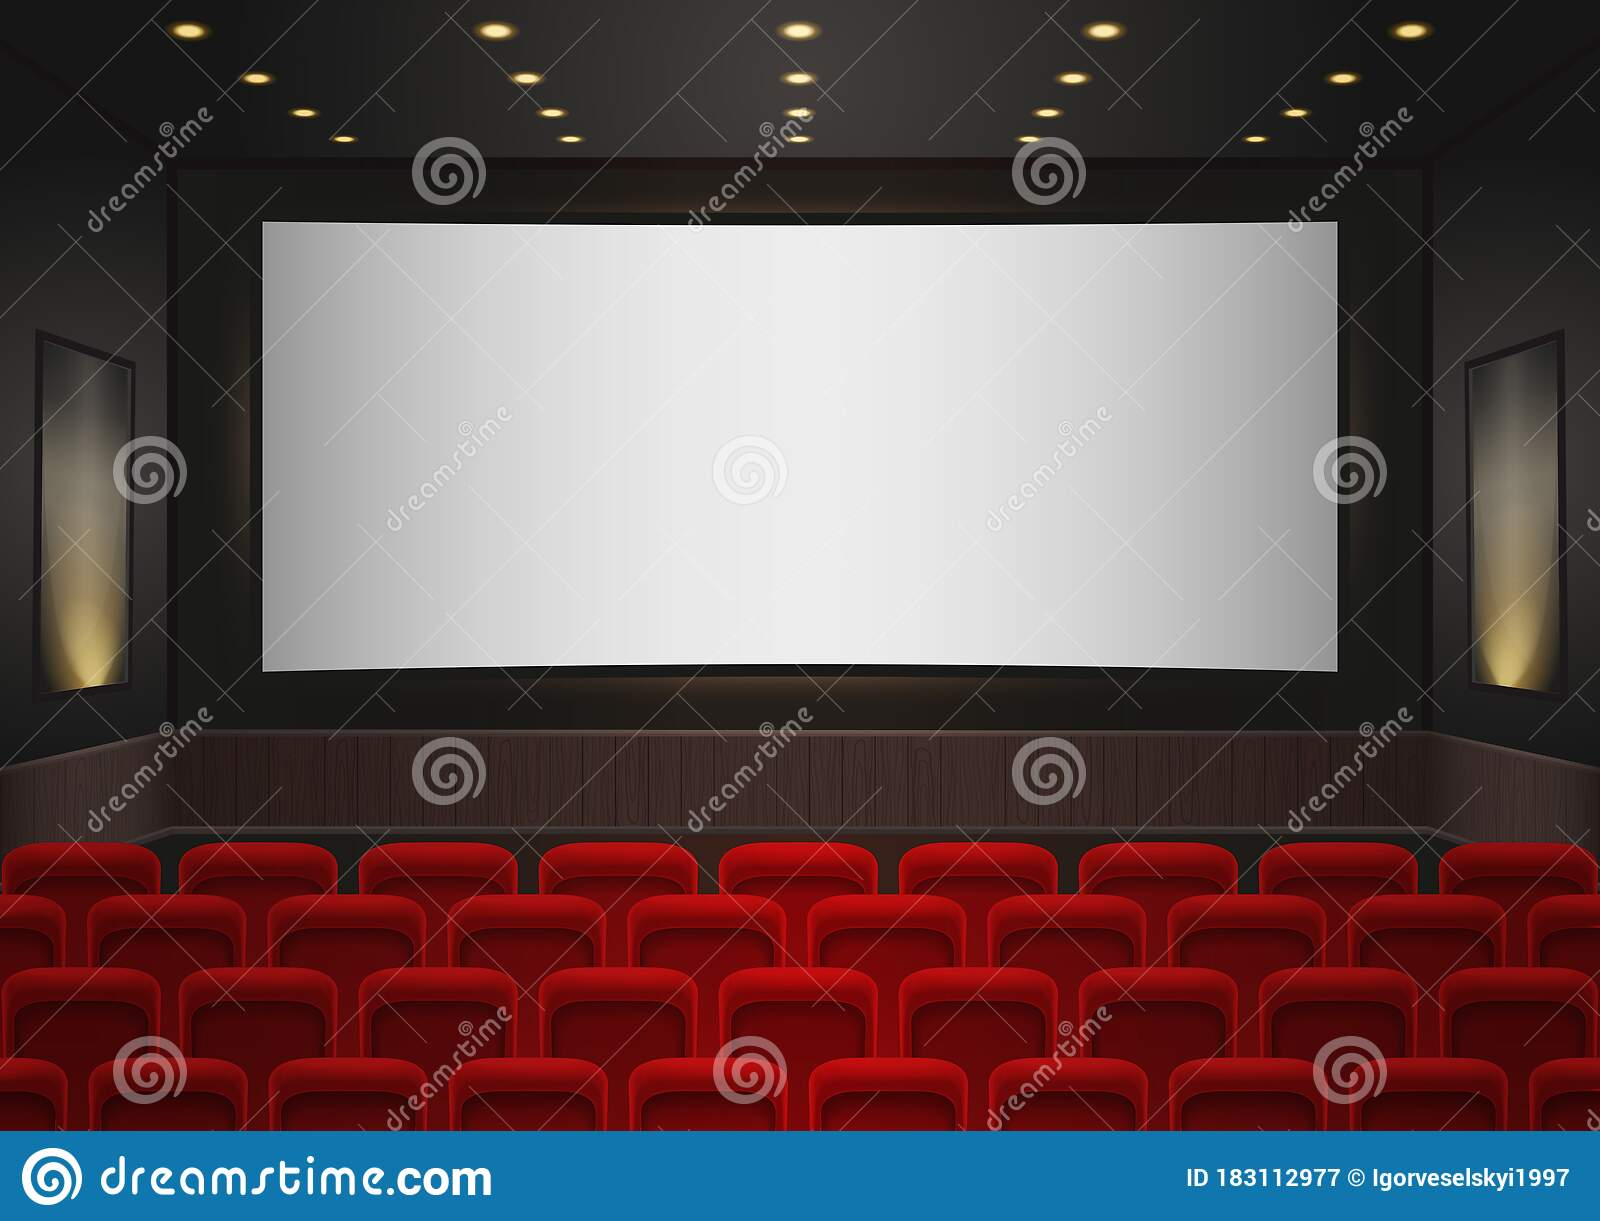 Interior Of A Cinema Movie Theatre Red Cinema Or Theater Seats In Front Of White Blank Screen Empty Cinema Auditorium Background Stock Illustration Illustration Of Interior Illustration 183112977